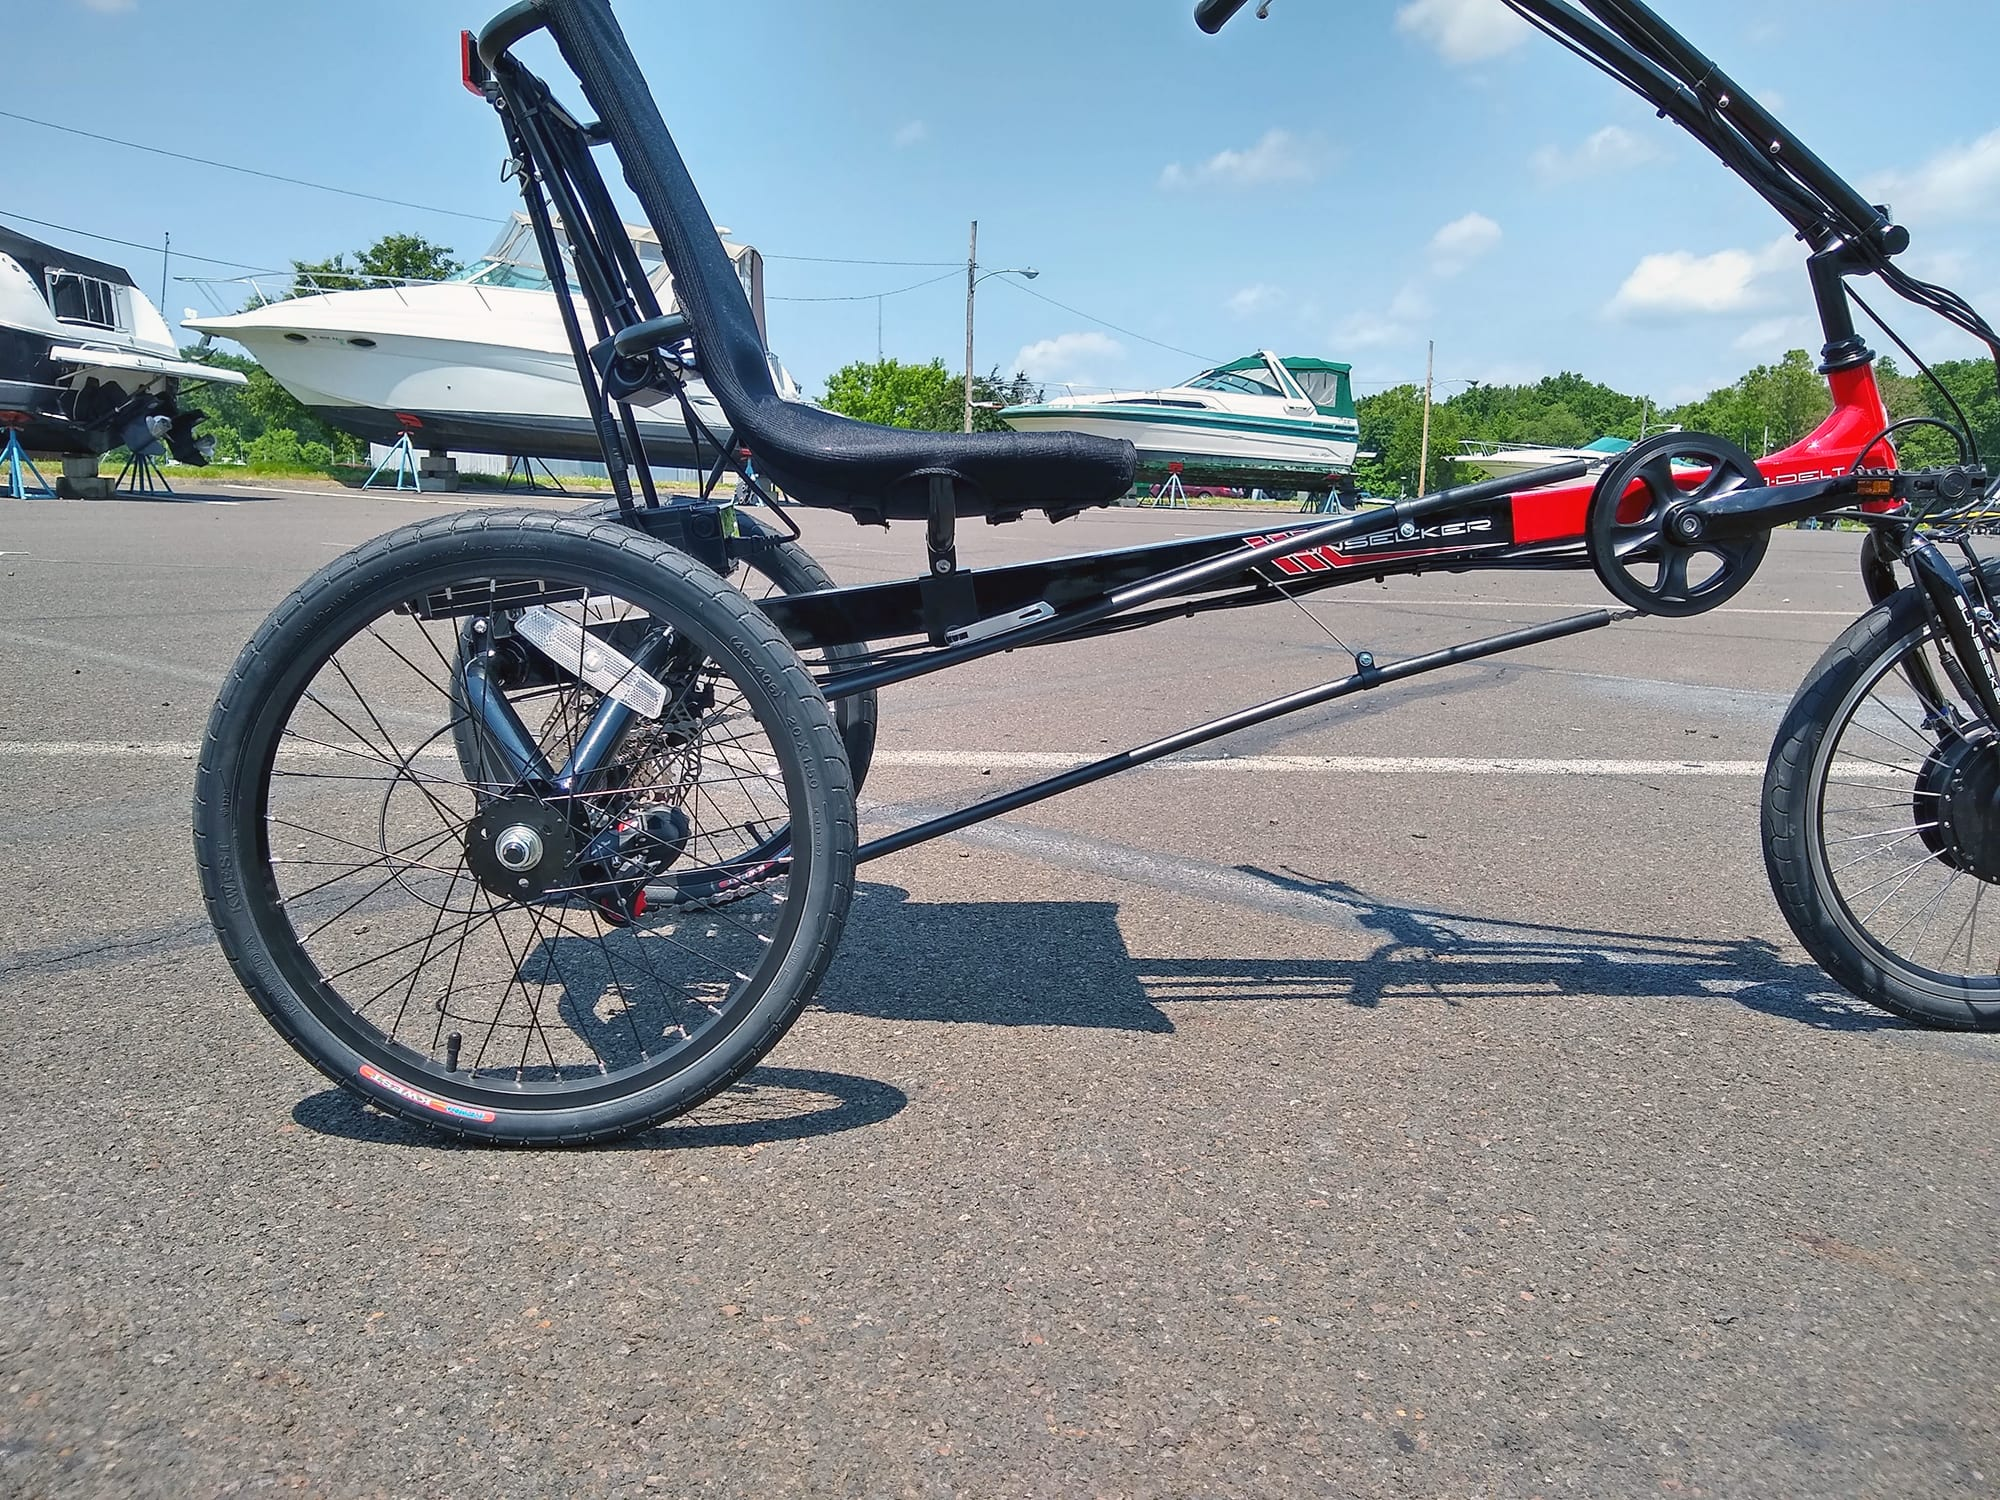 Electric Bike Technologies Electric Eco-Delta Trike Review - Prices, Specs,  Videos, Photos